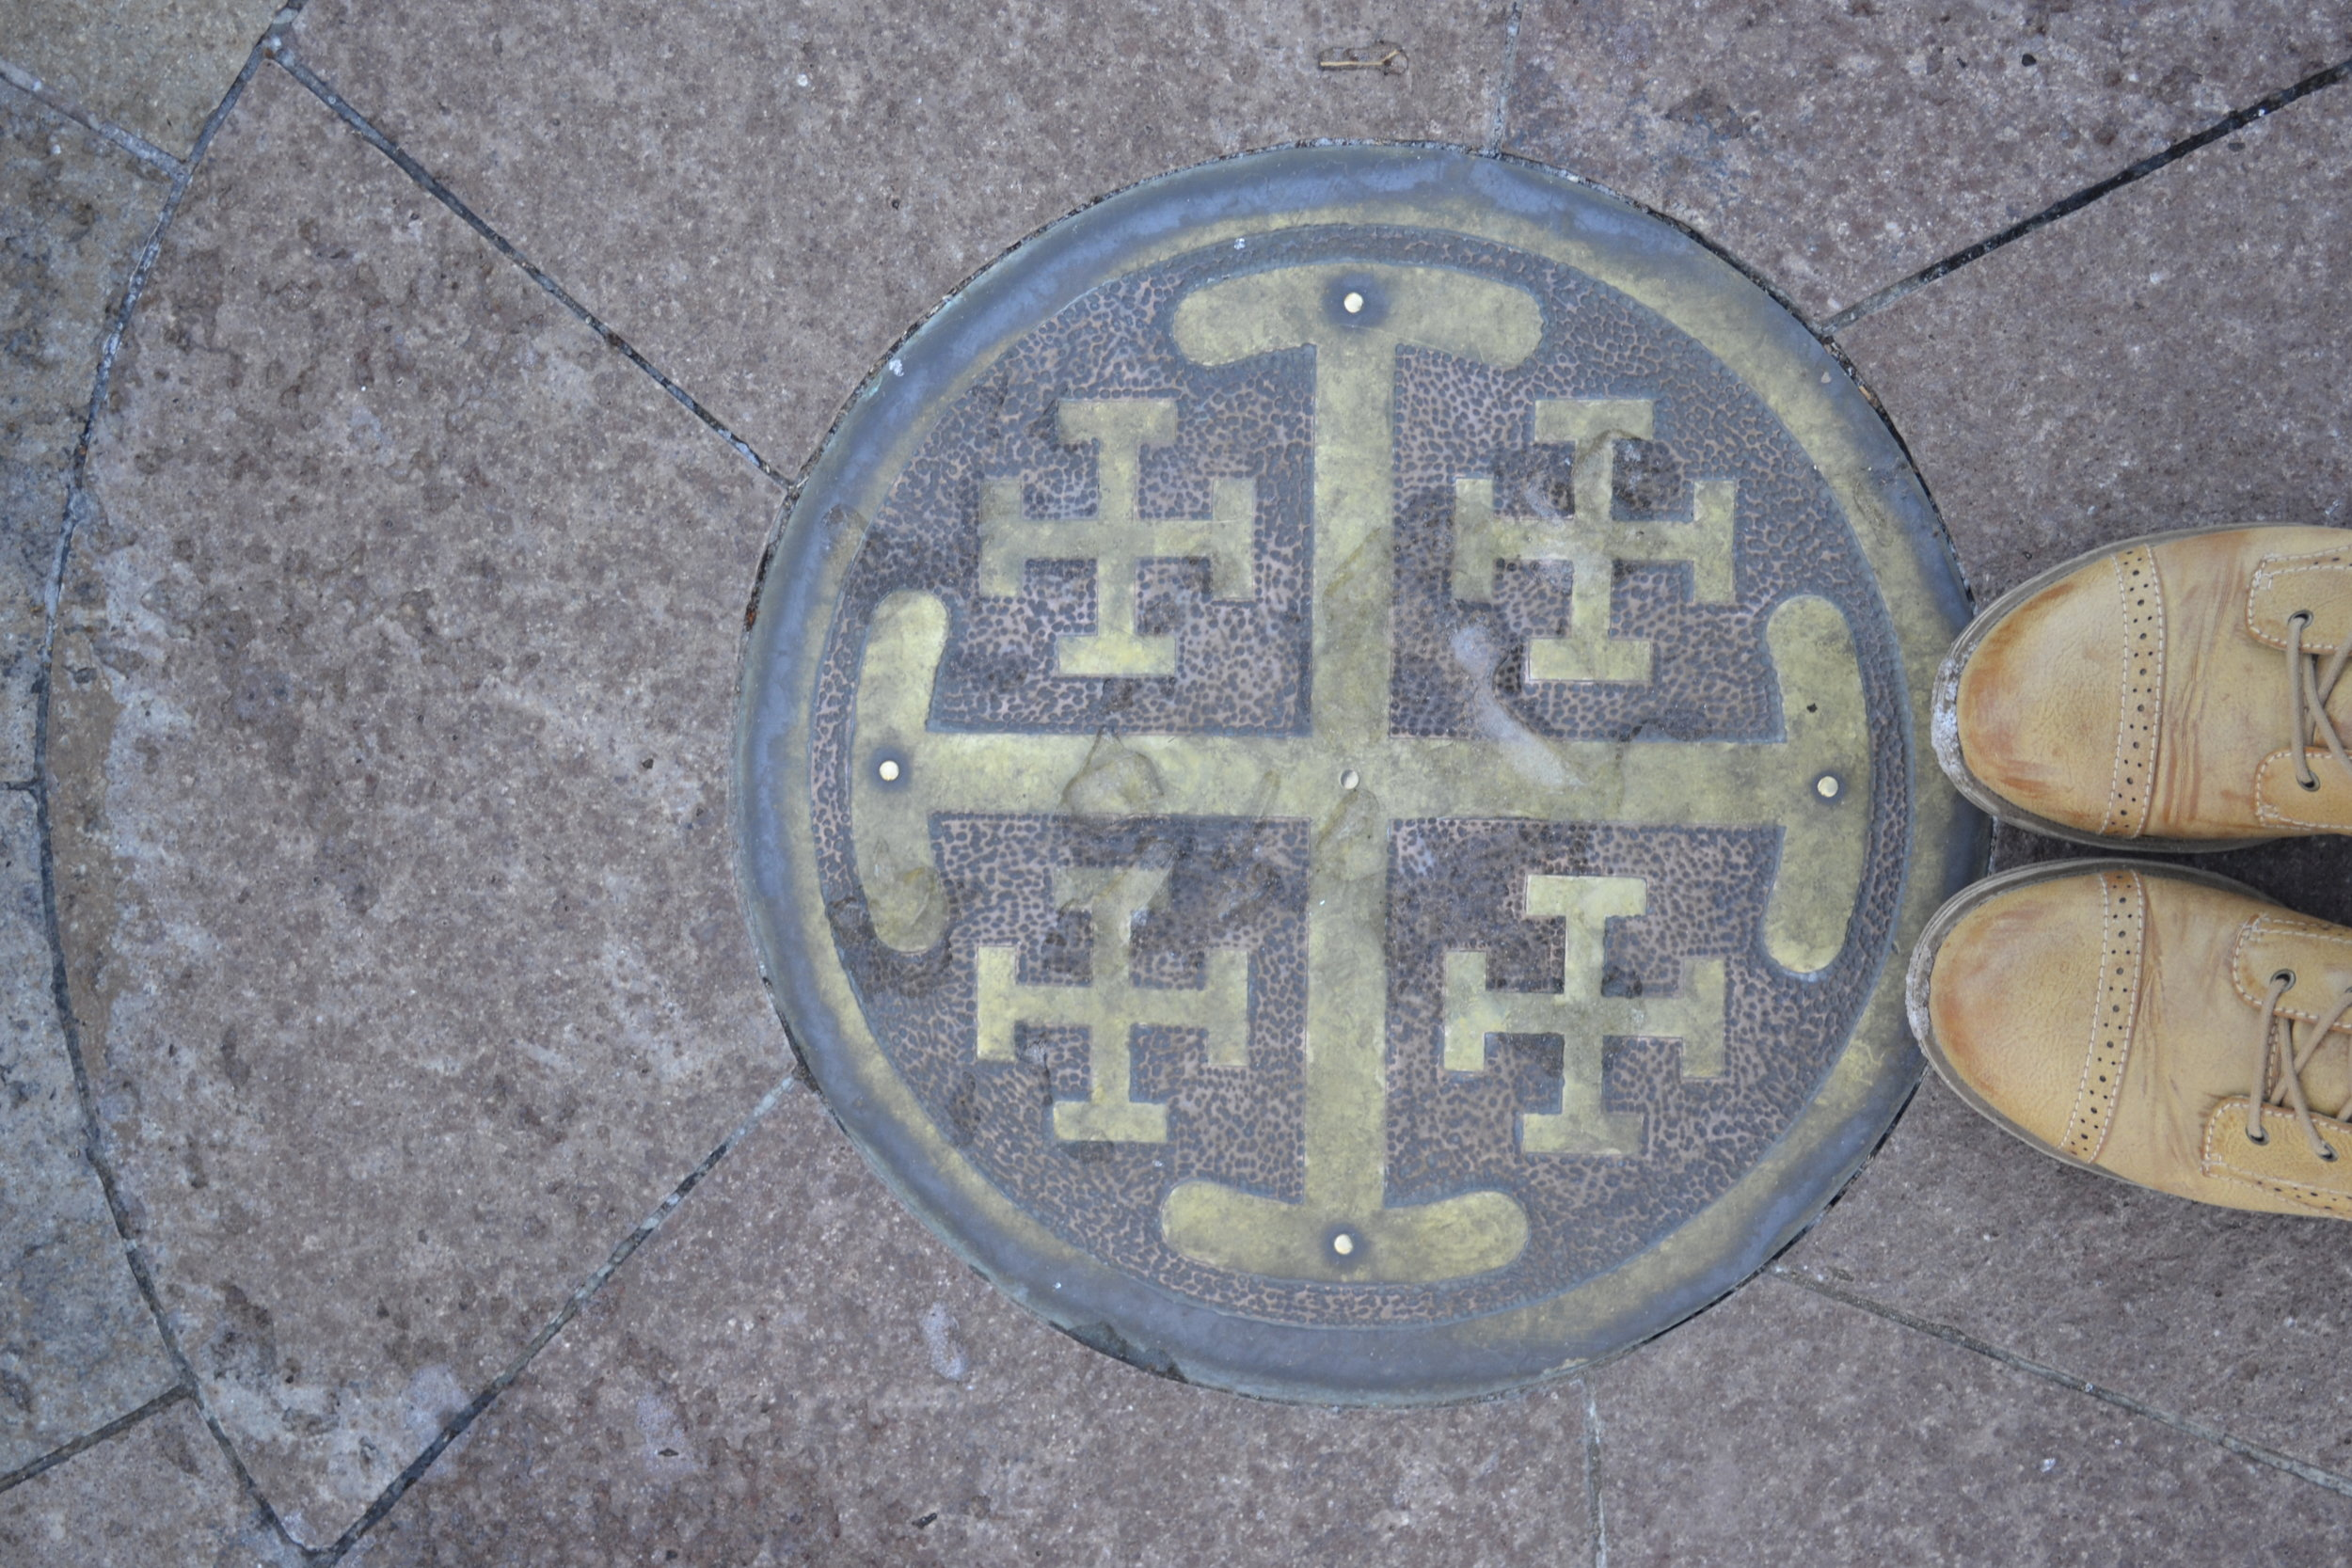 Labyrinth Center, Cathedral Basilica of St. Francis of Assisi, Santa Fe NM